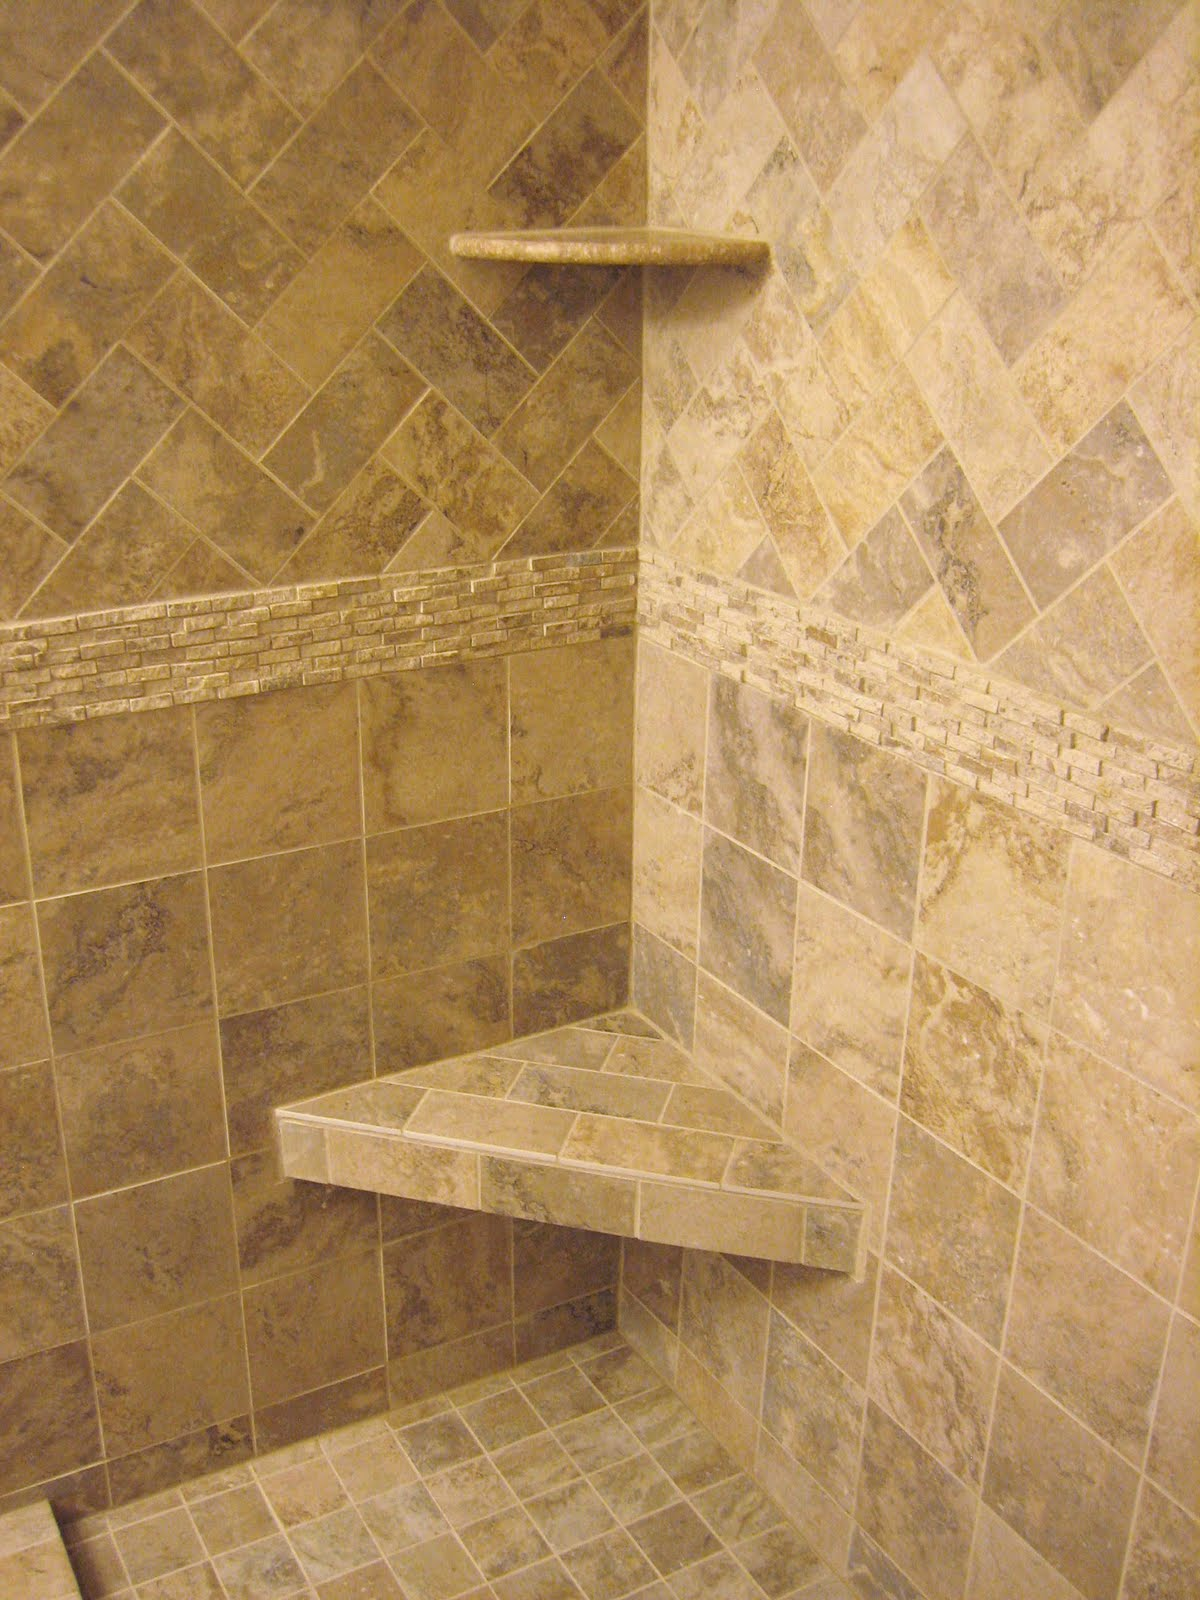 H winter showroom blog luxury master bath remodel athena Bathroom tile gallery